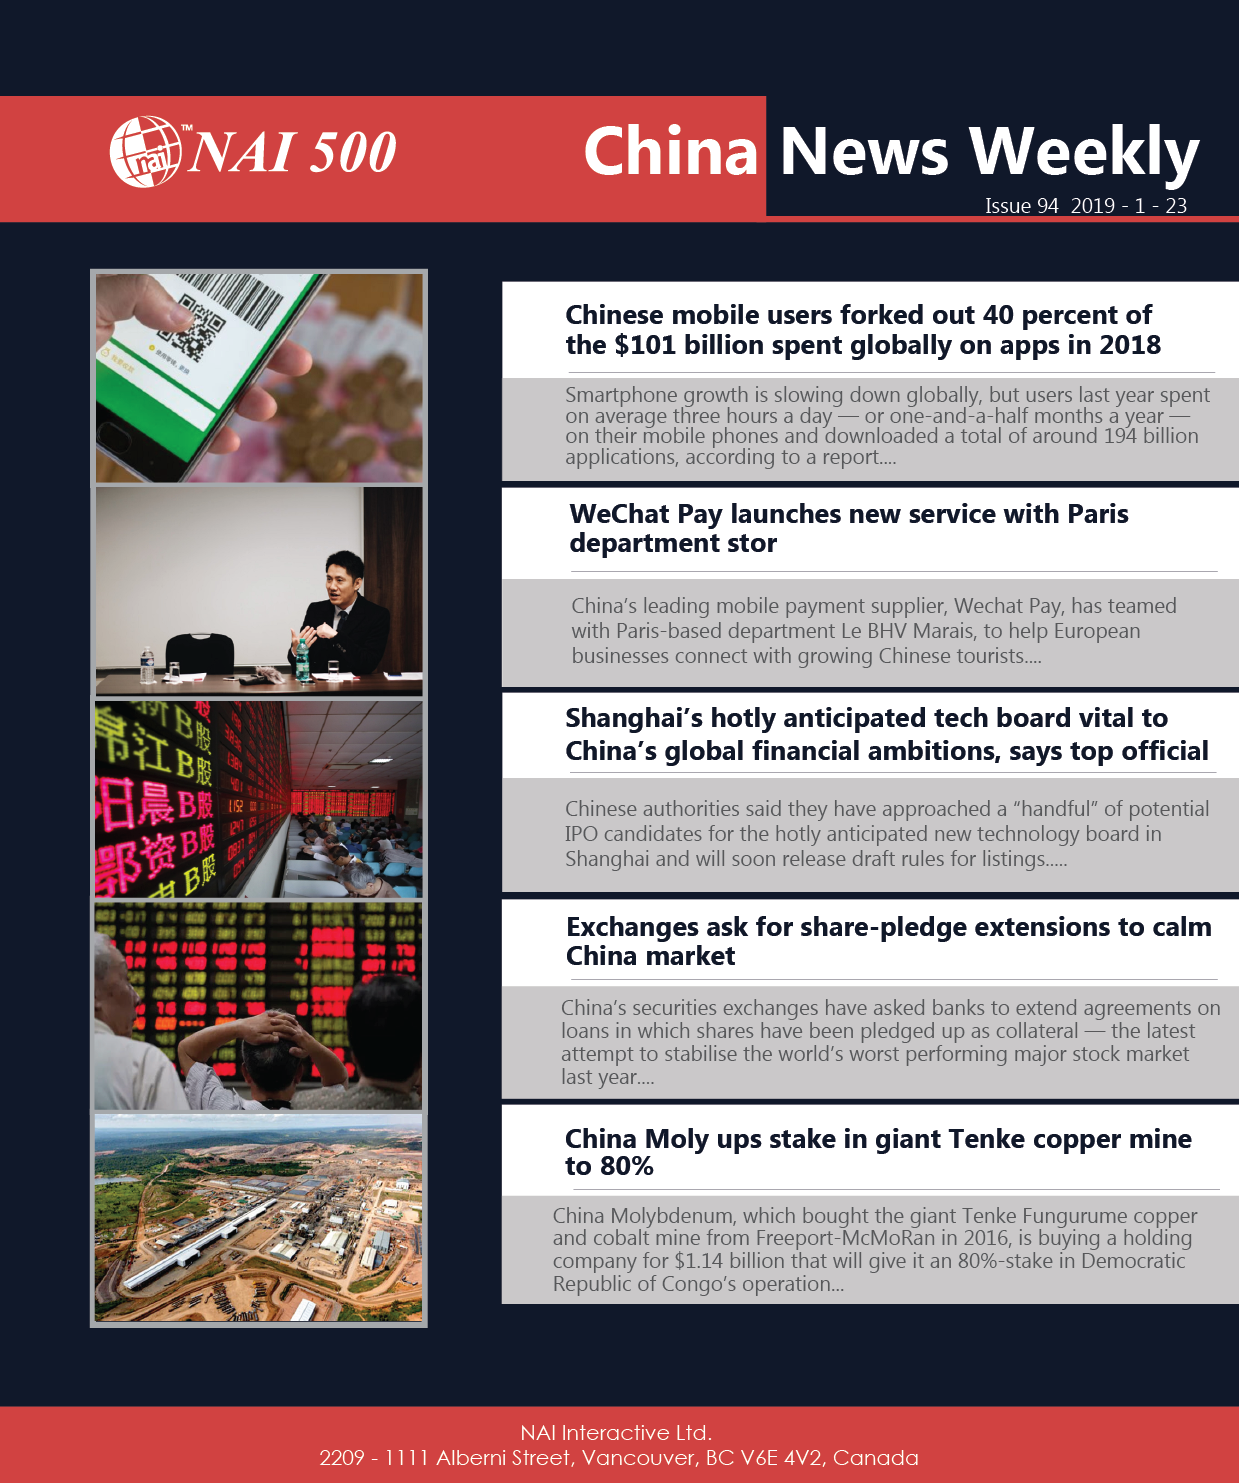 China News Weekly 94 - Chinese mobile users forked out 40 percent of